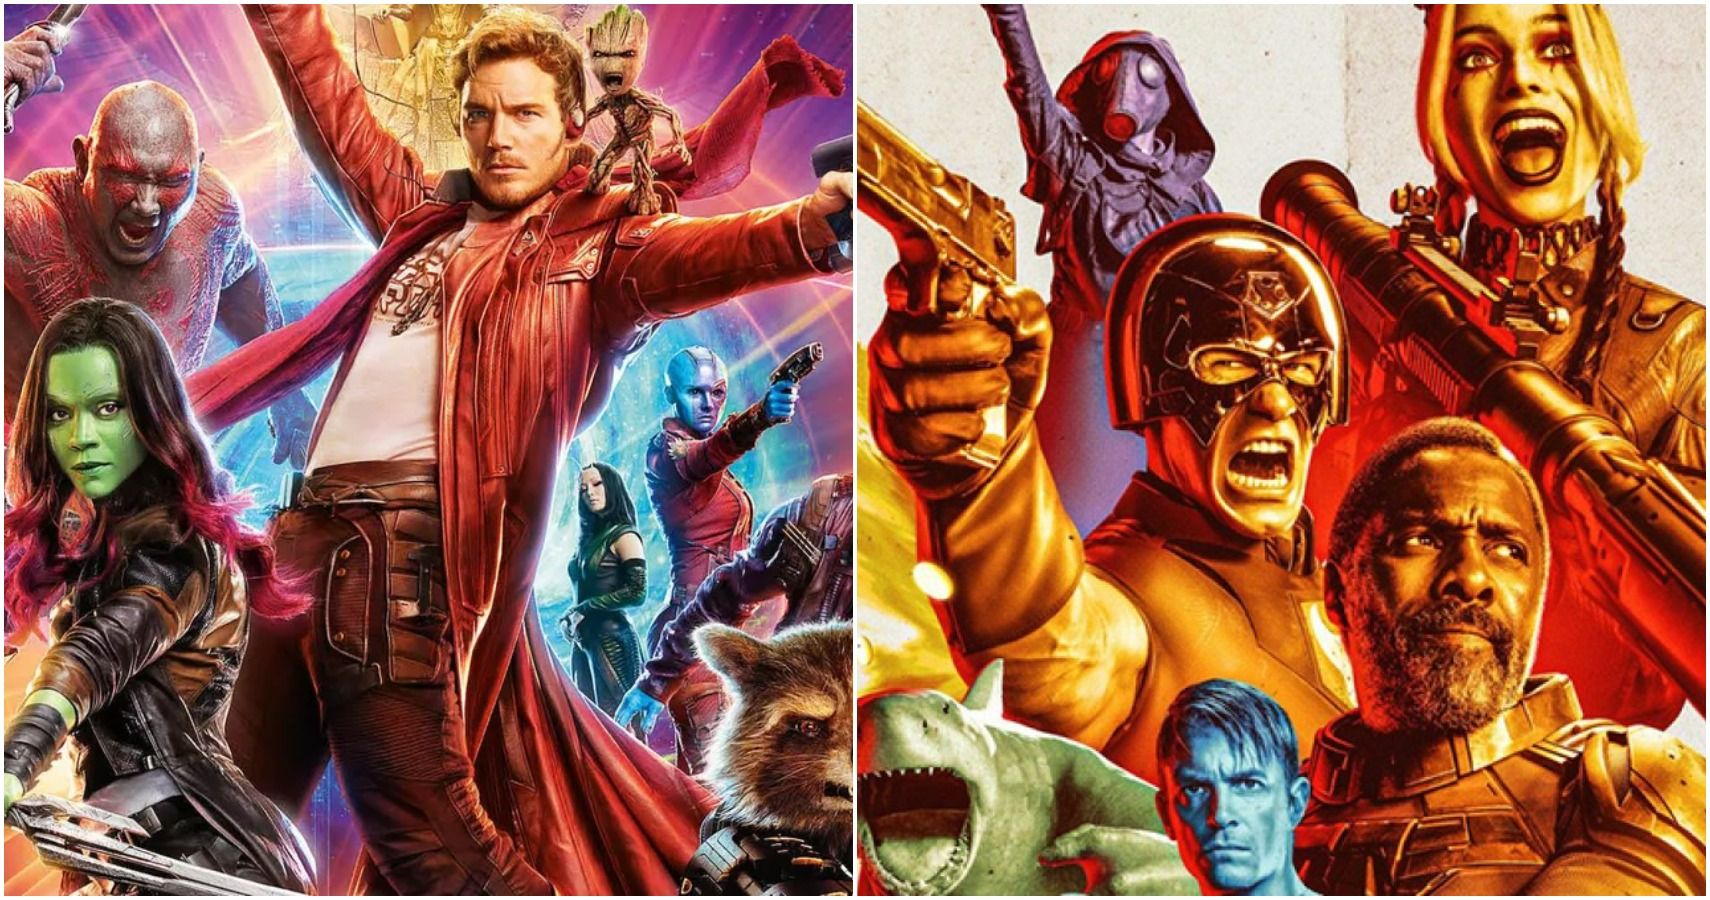 An MCU Crossover With DC Is Possible According To James Gunn